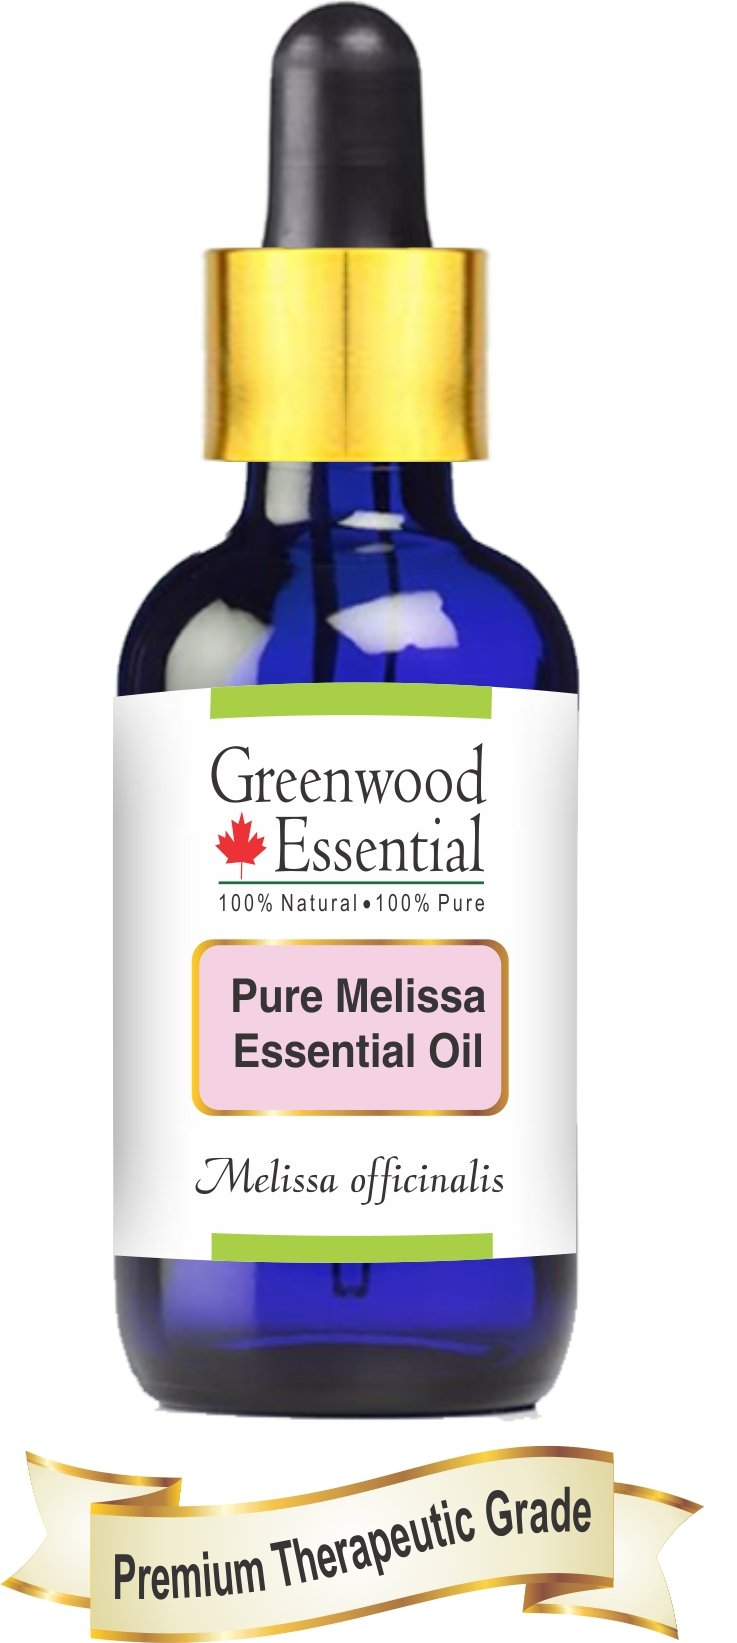 Greenwood Essential Pure Melissa Essential Oil (Melissa officinalis) with Glass Dropper 100% Natural Therapeutic Grade Steam Distilled 100ml (3.38 oz) by Greenwood Essential